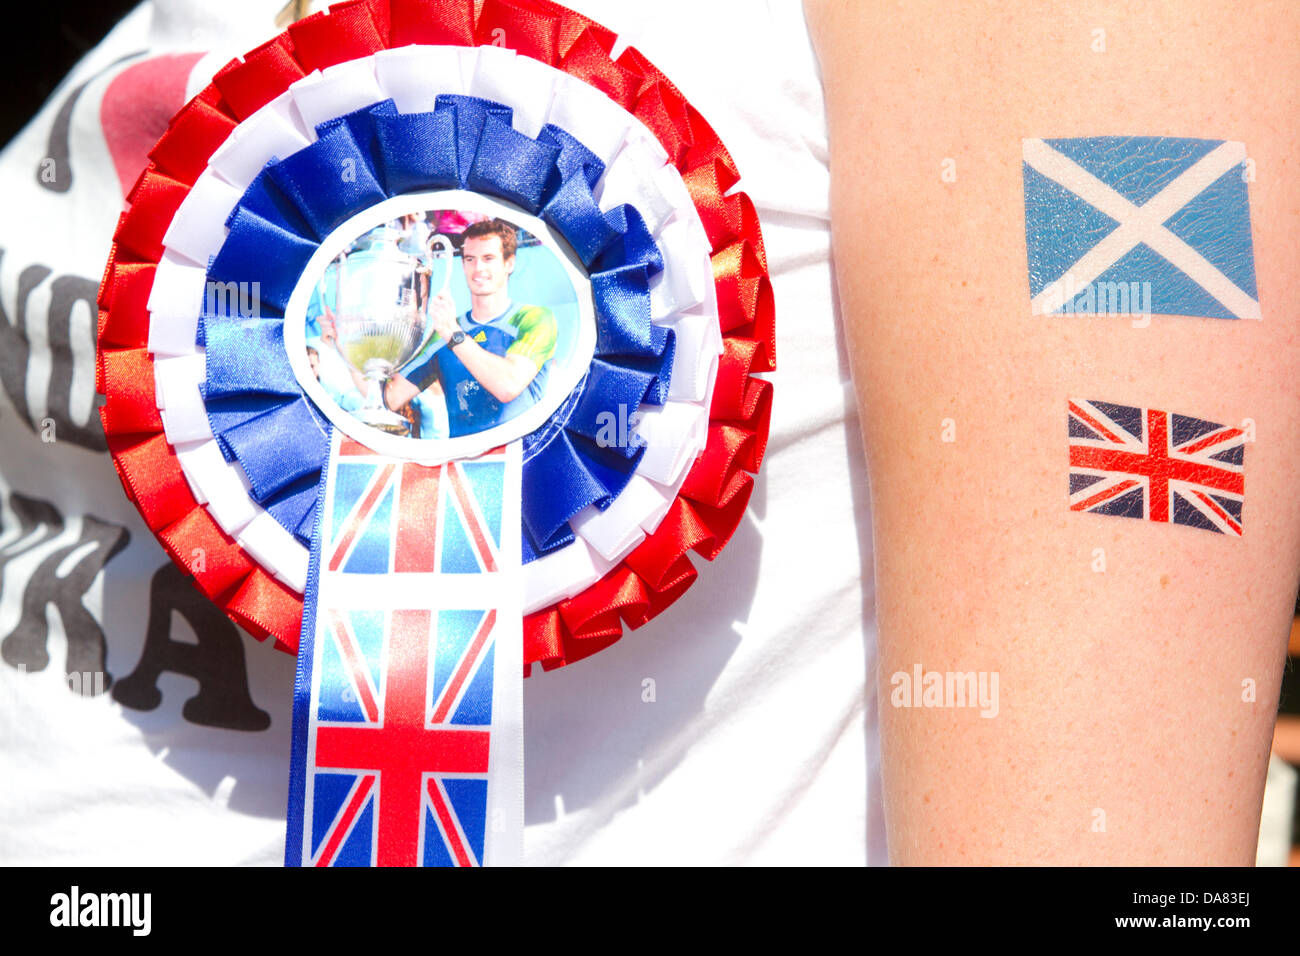 Wimbledon London UK. 7th July 2013. A tennis  fan wears a Rosette Ribbon to support Andy Murray  as he prepares - Stock Image